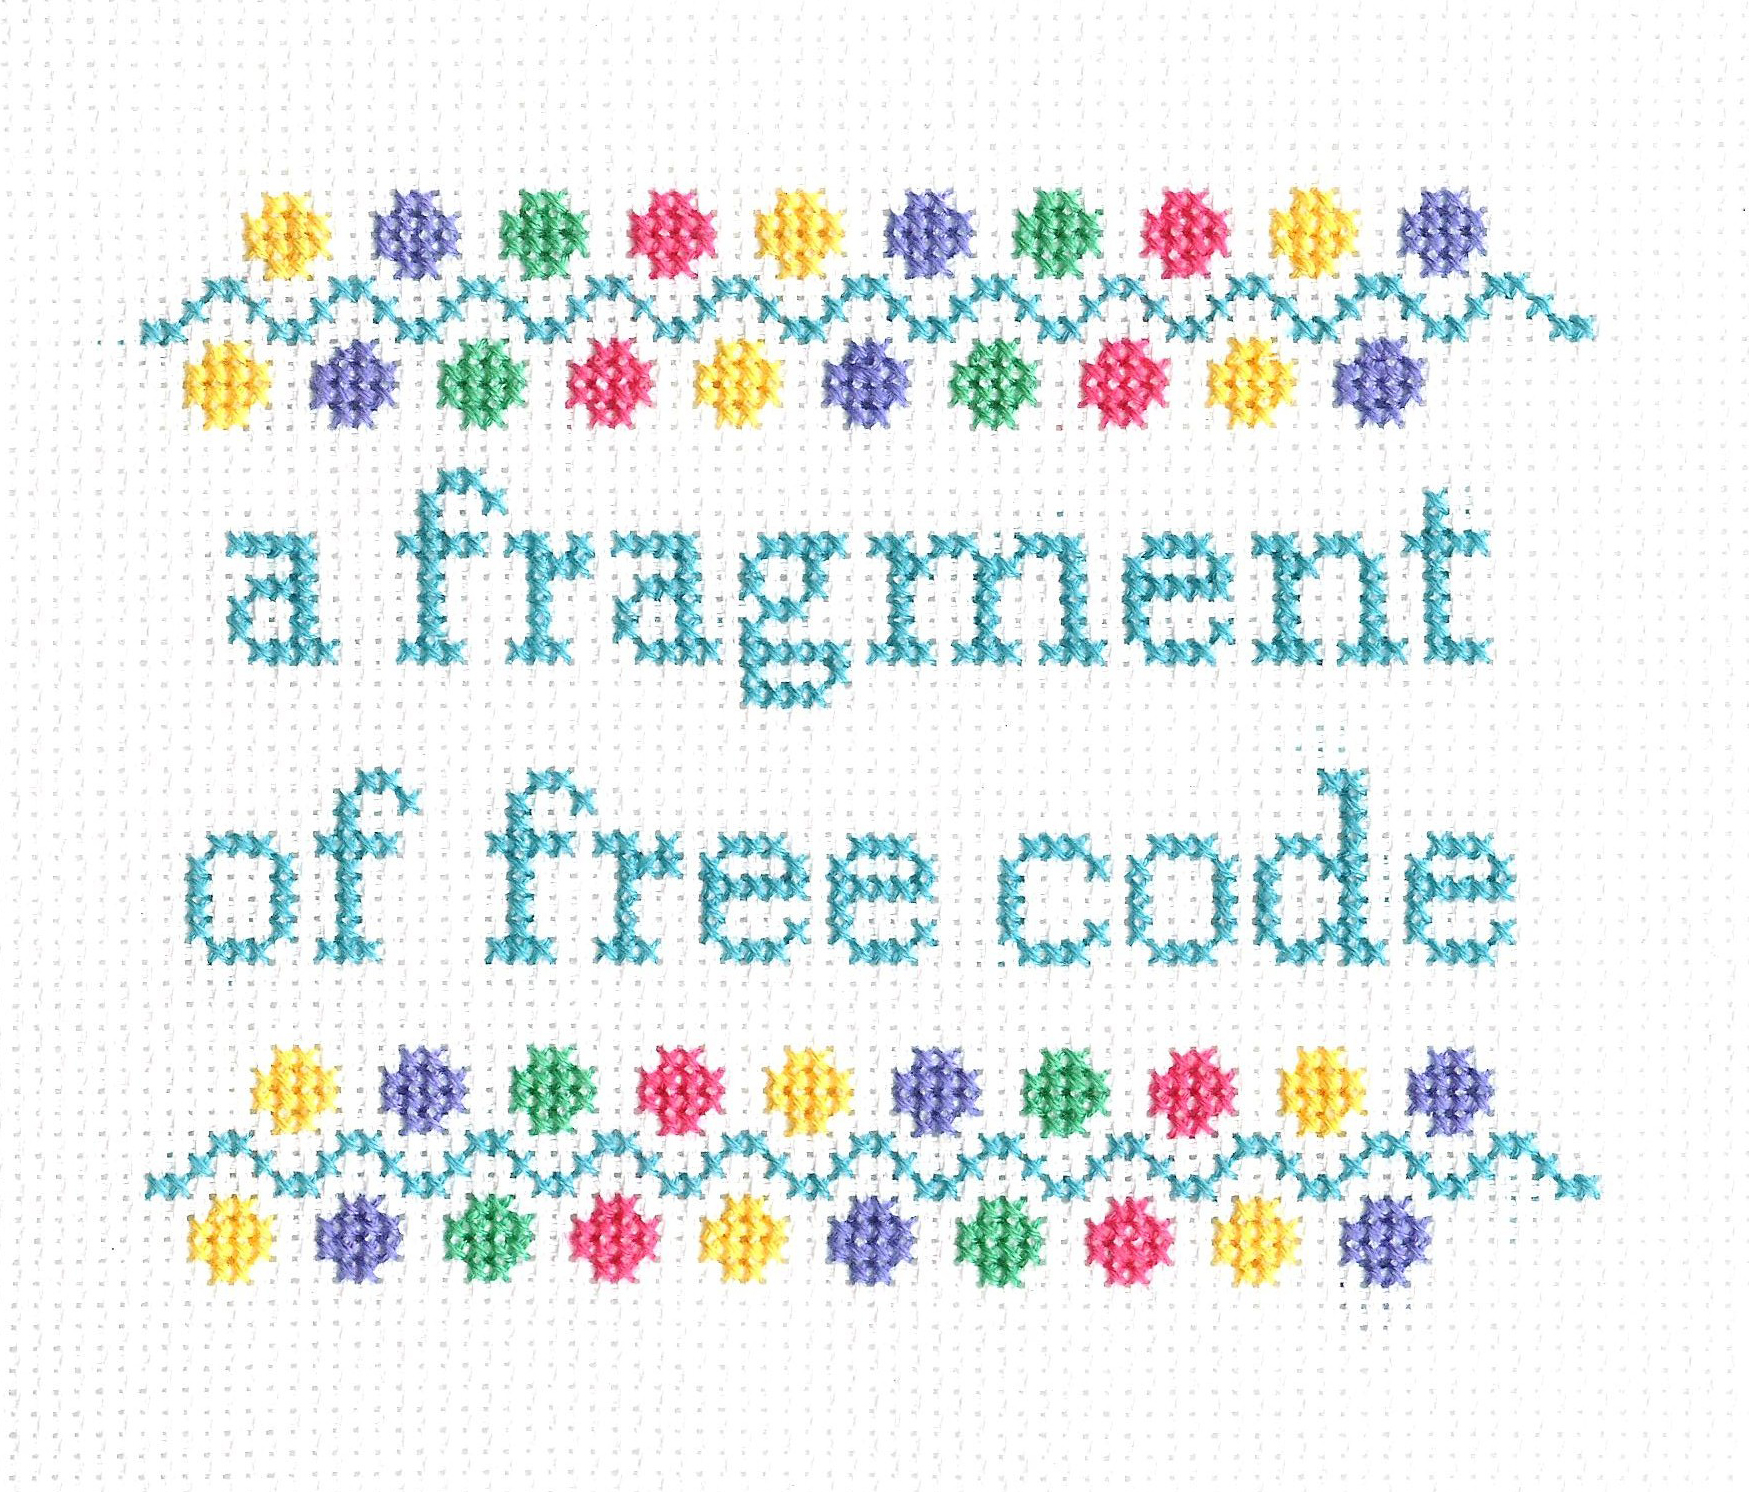 embroidered text: 'a fragment of free code'